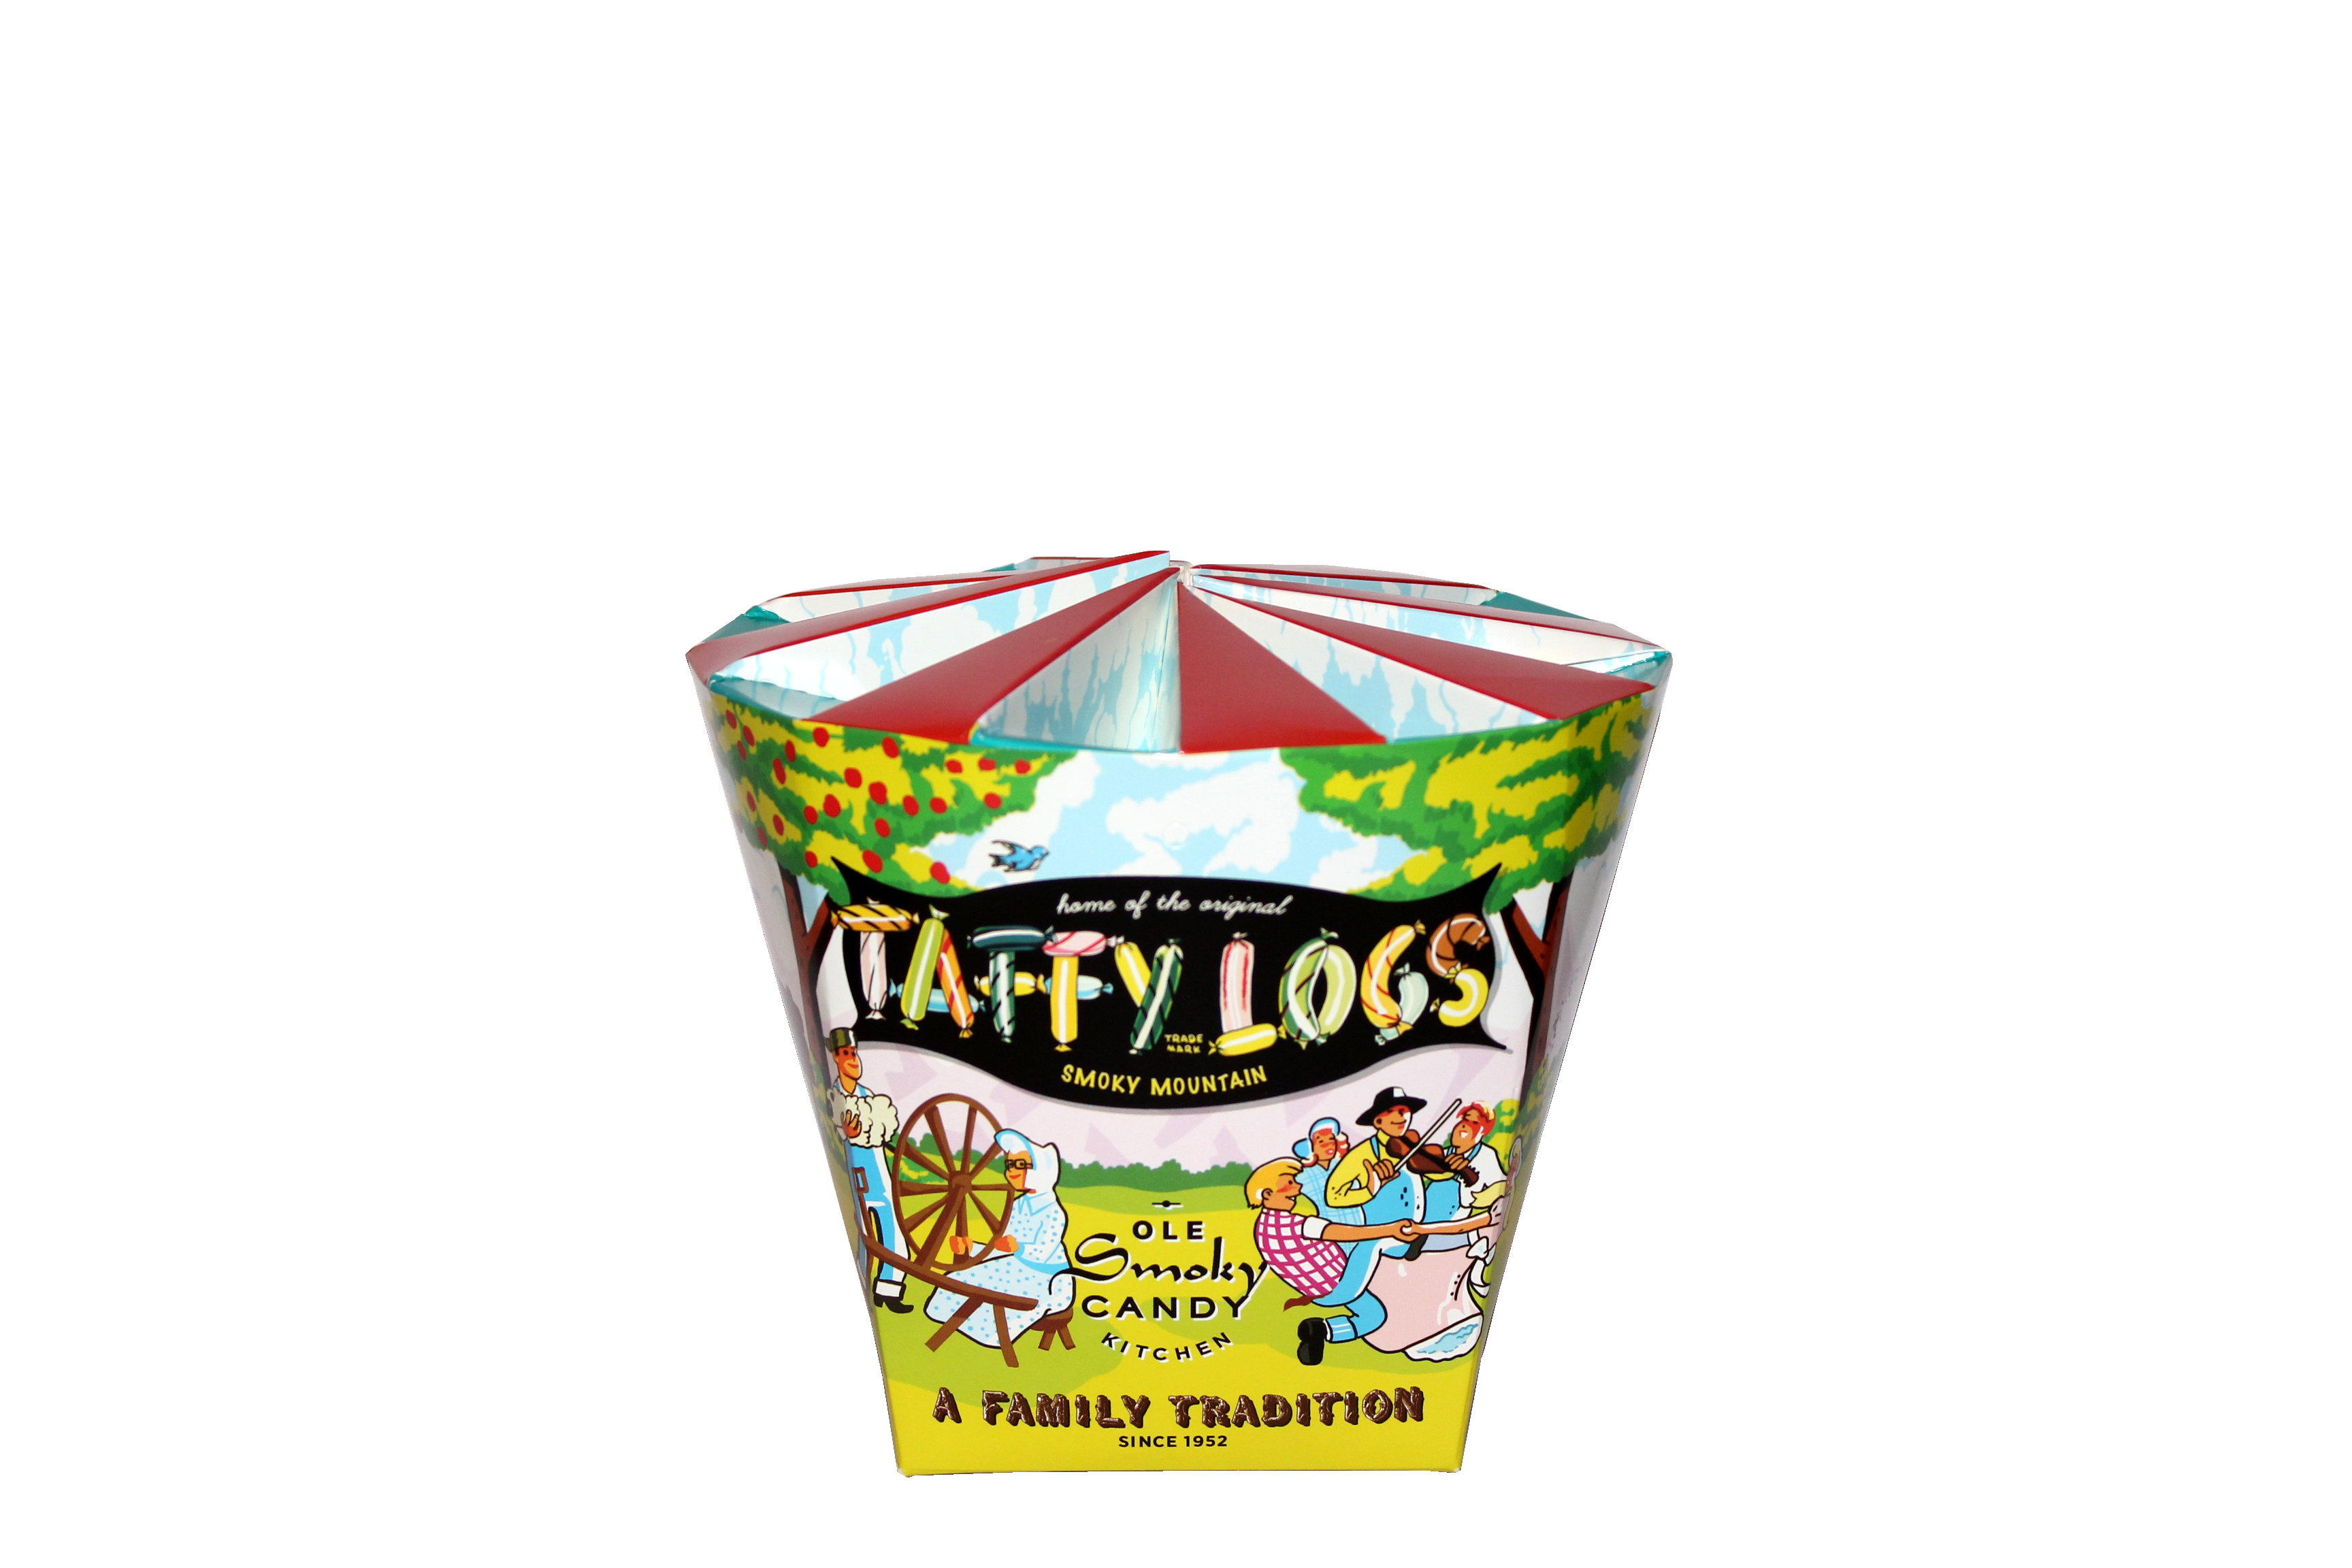 Taffy Logs – Custom Container | Carousel Container